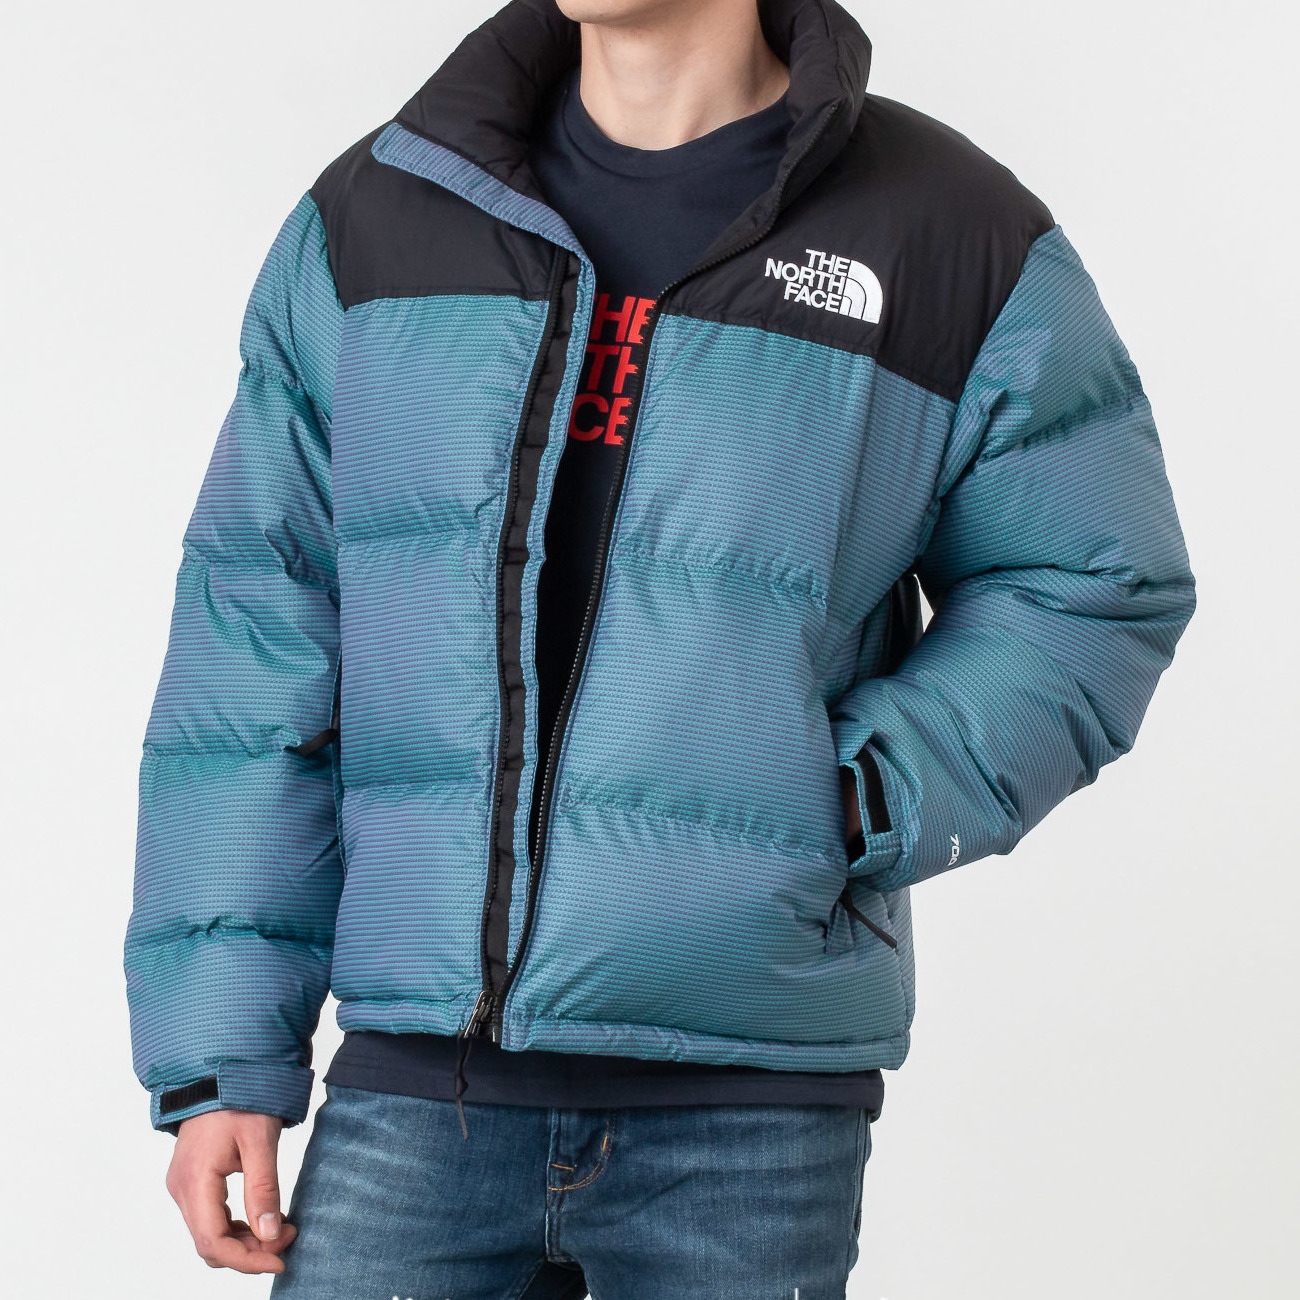 The North Face 1996 Nuptse Jacket Iridescent/ Multicolor